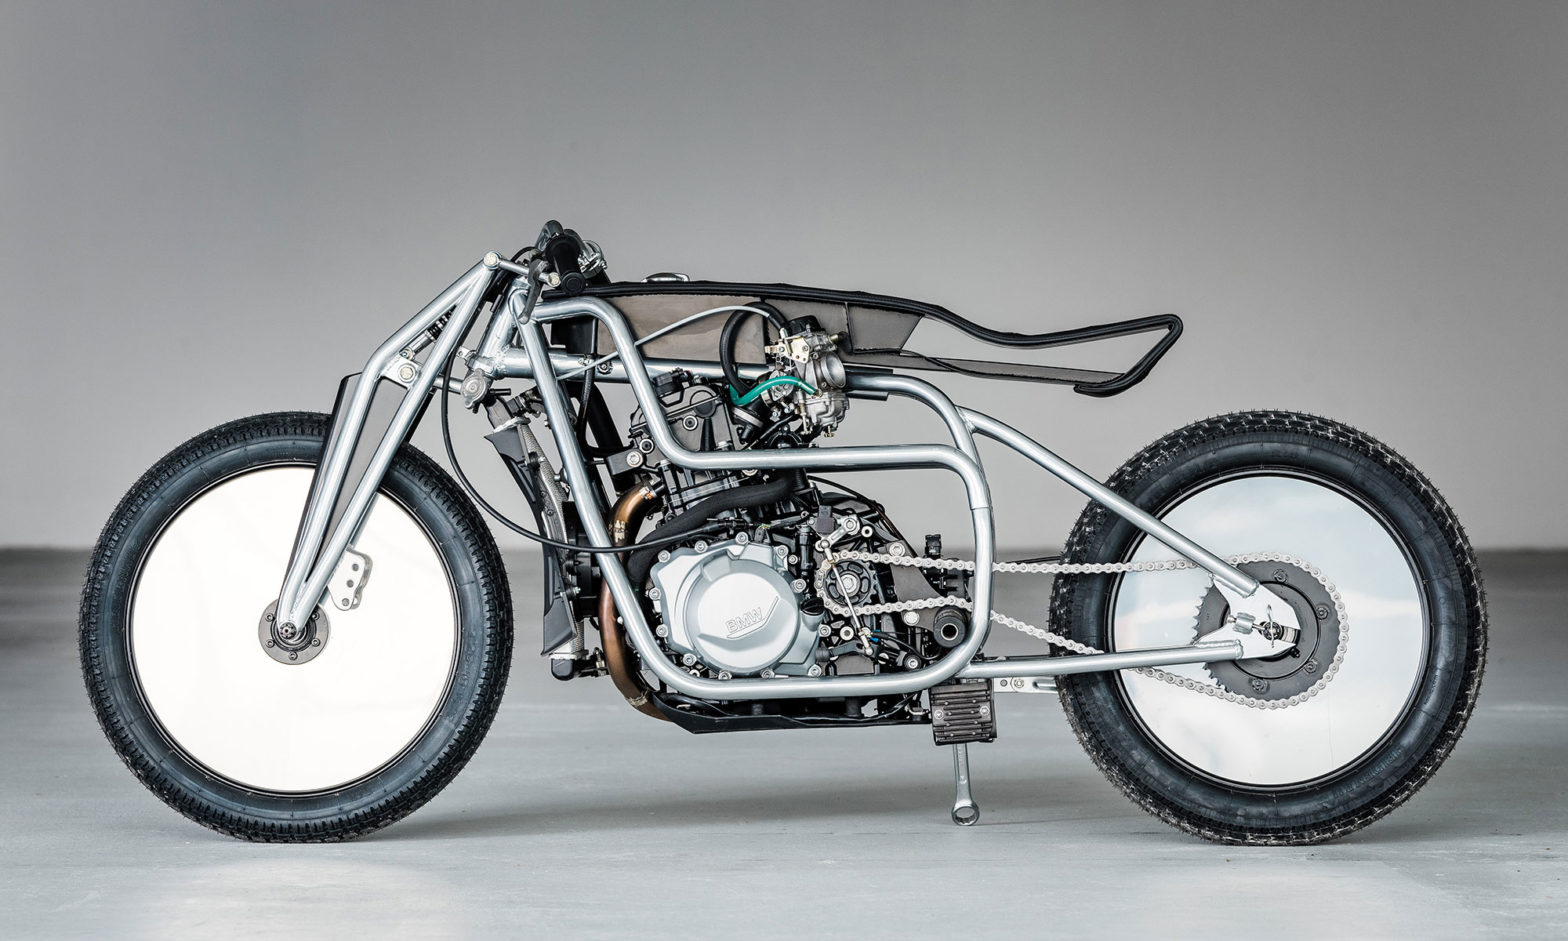 Bauhaus 100 Custom Bike by Krautmotors